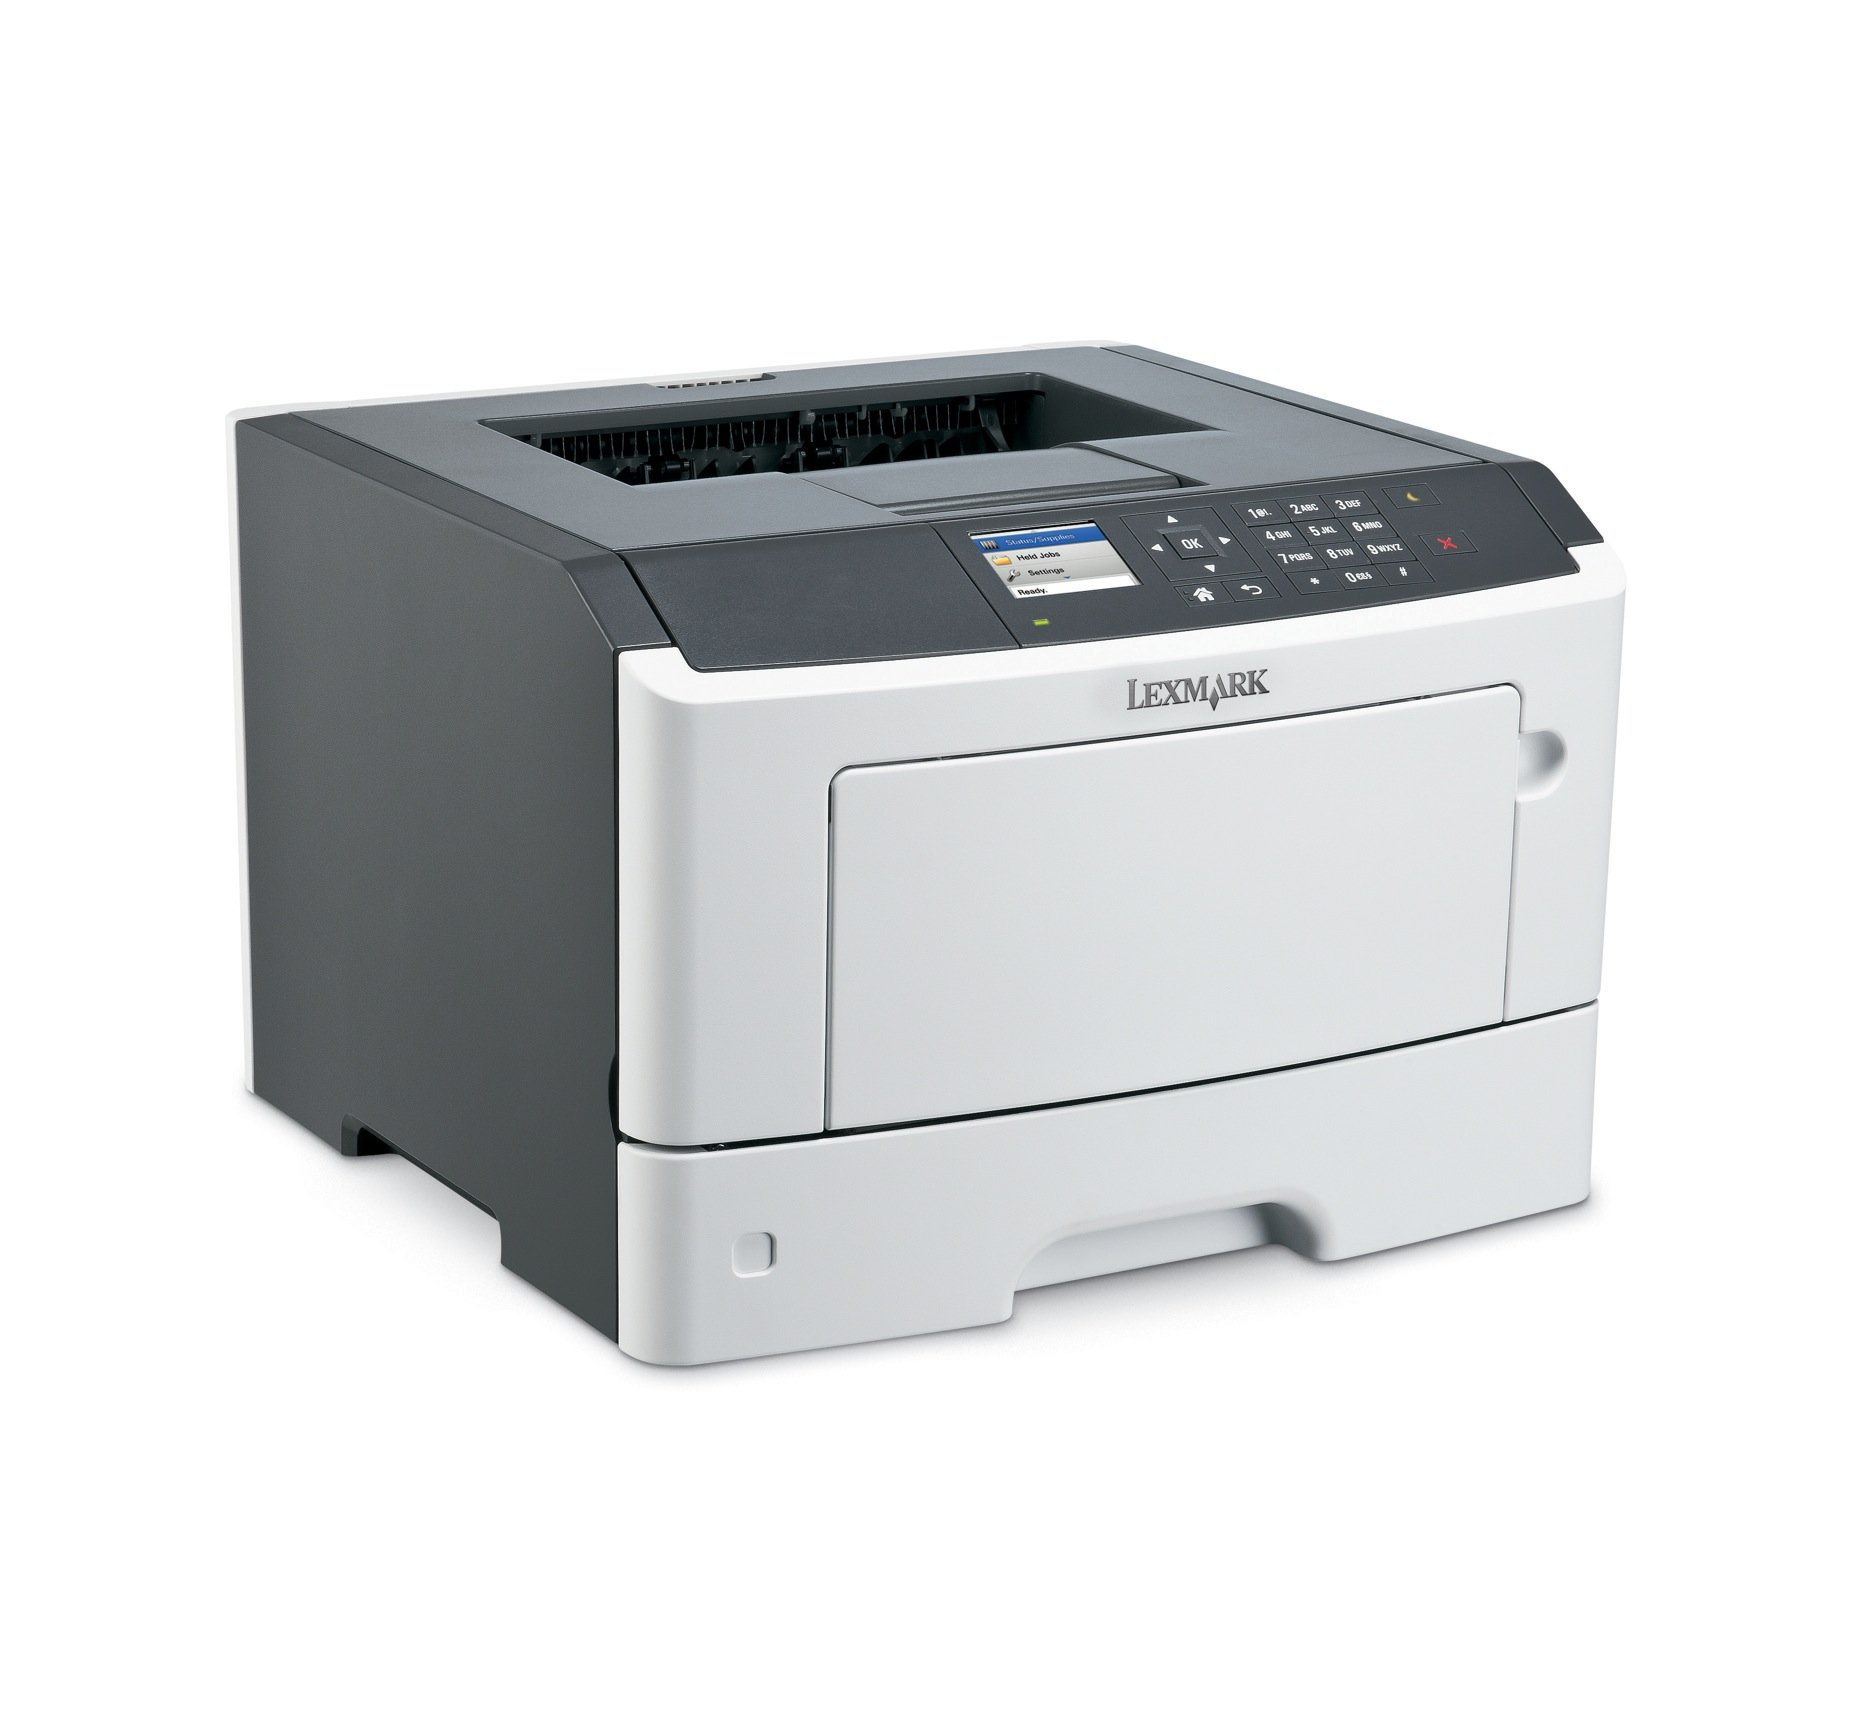 Lexmark MS417dn Compact Laser Printer, Monochrome, Networking, Duplex Printing by Lexmark